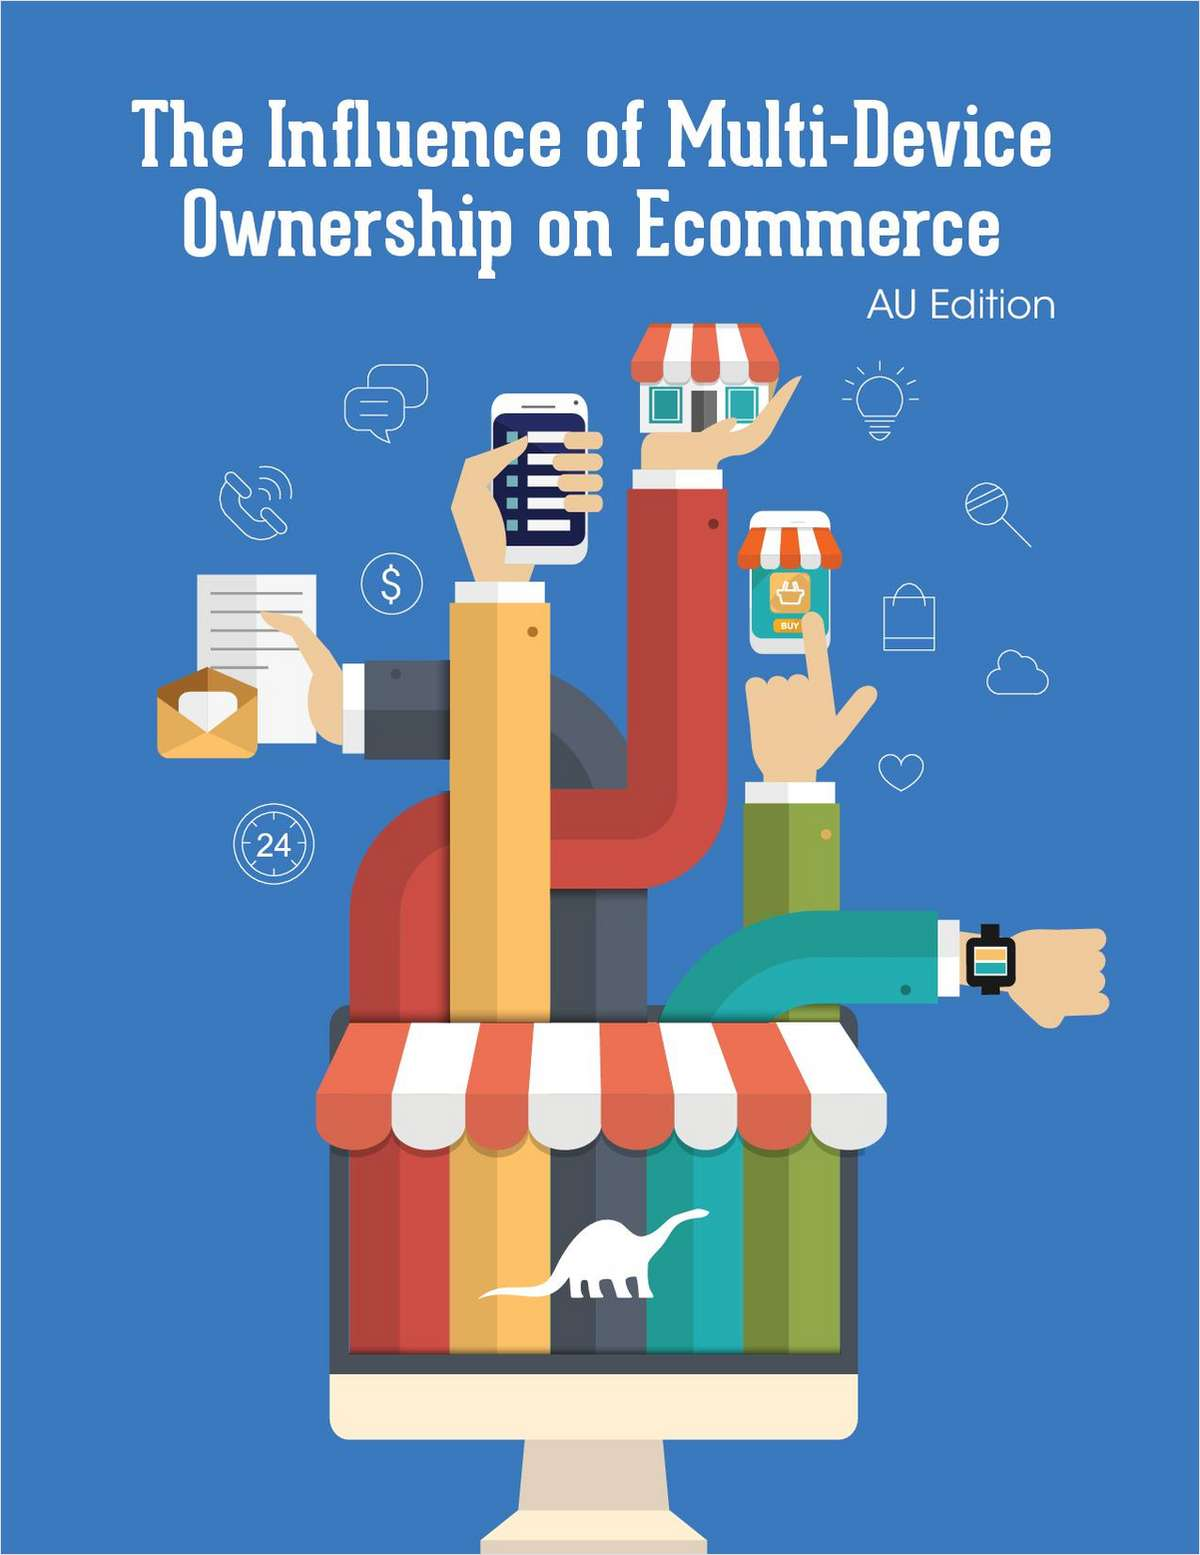 Ecommerce Shopping Behaviour of Australian Consumers